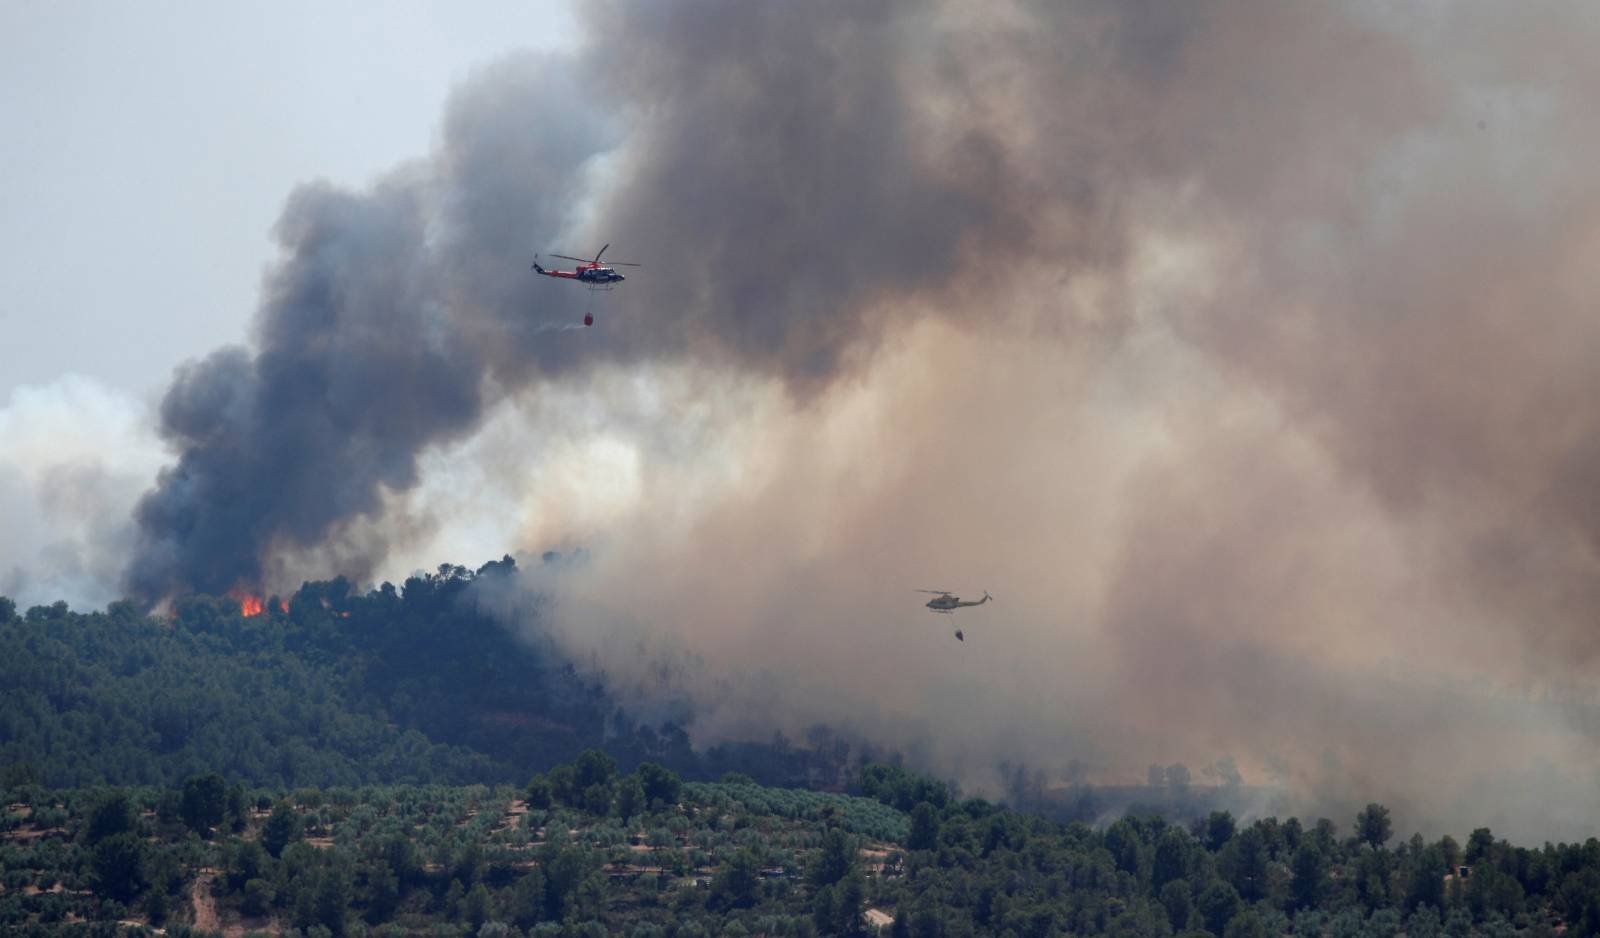 Helicopters drop water over a forest fire near Bovera